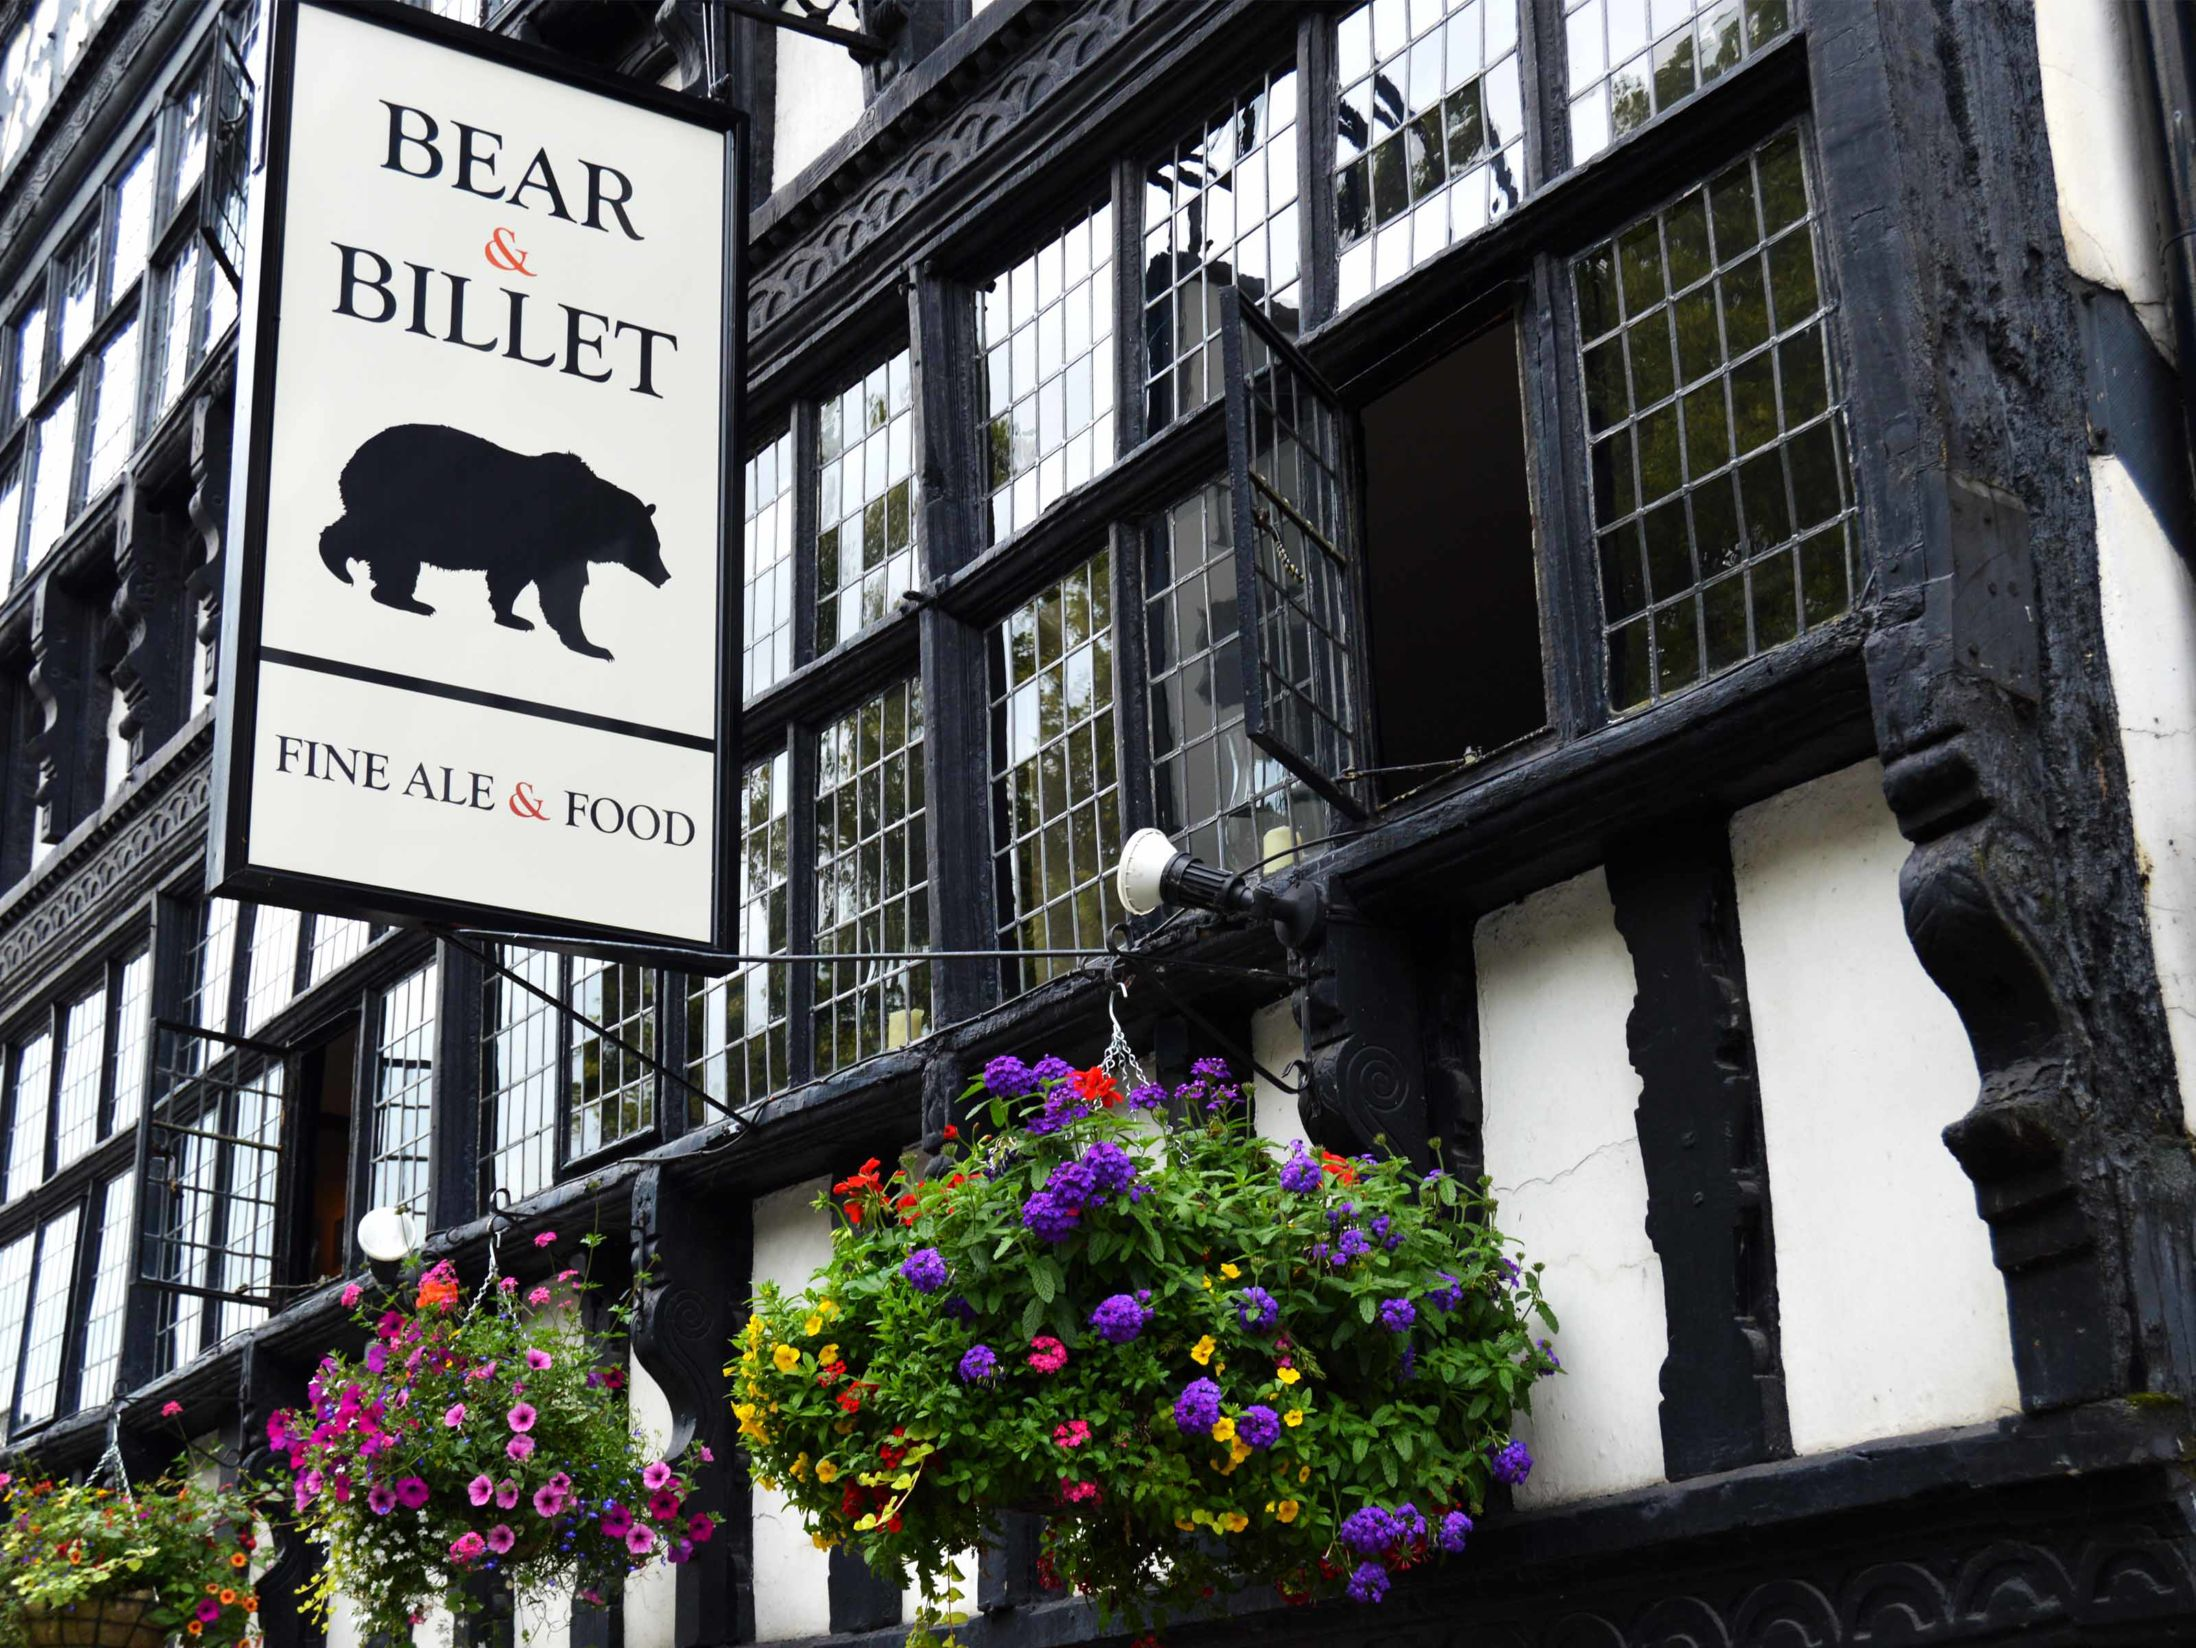 Bear & Billet - Real Ale Pubs in Chester